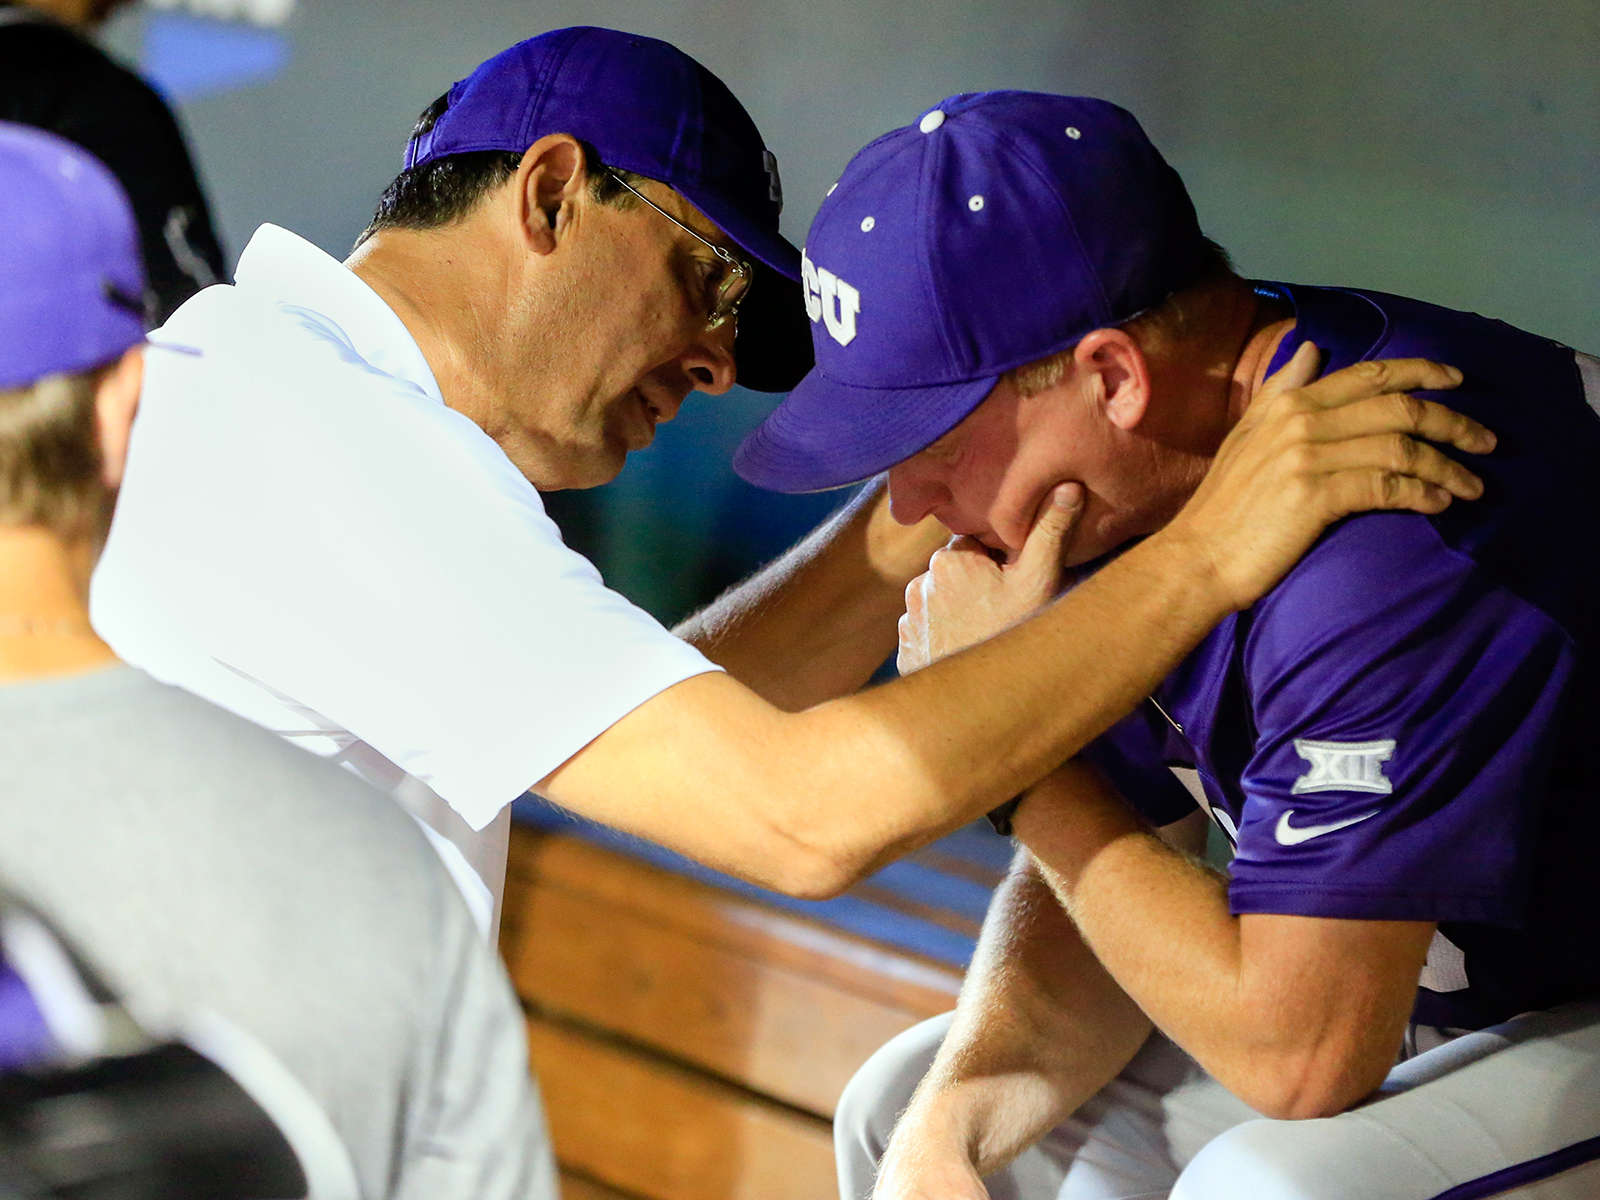 Chris Del Conte (left) earned high marks for the success TCU has enjoyed across multiple major sports since he arrived in Fort Worth.